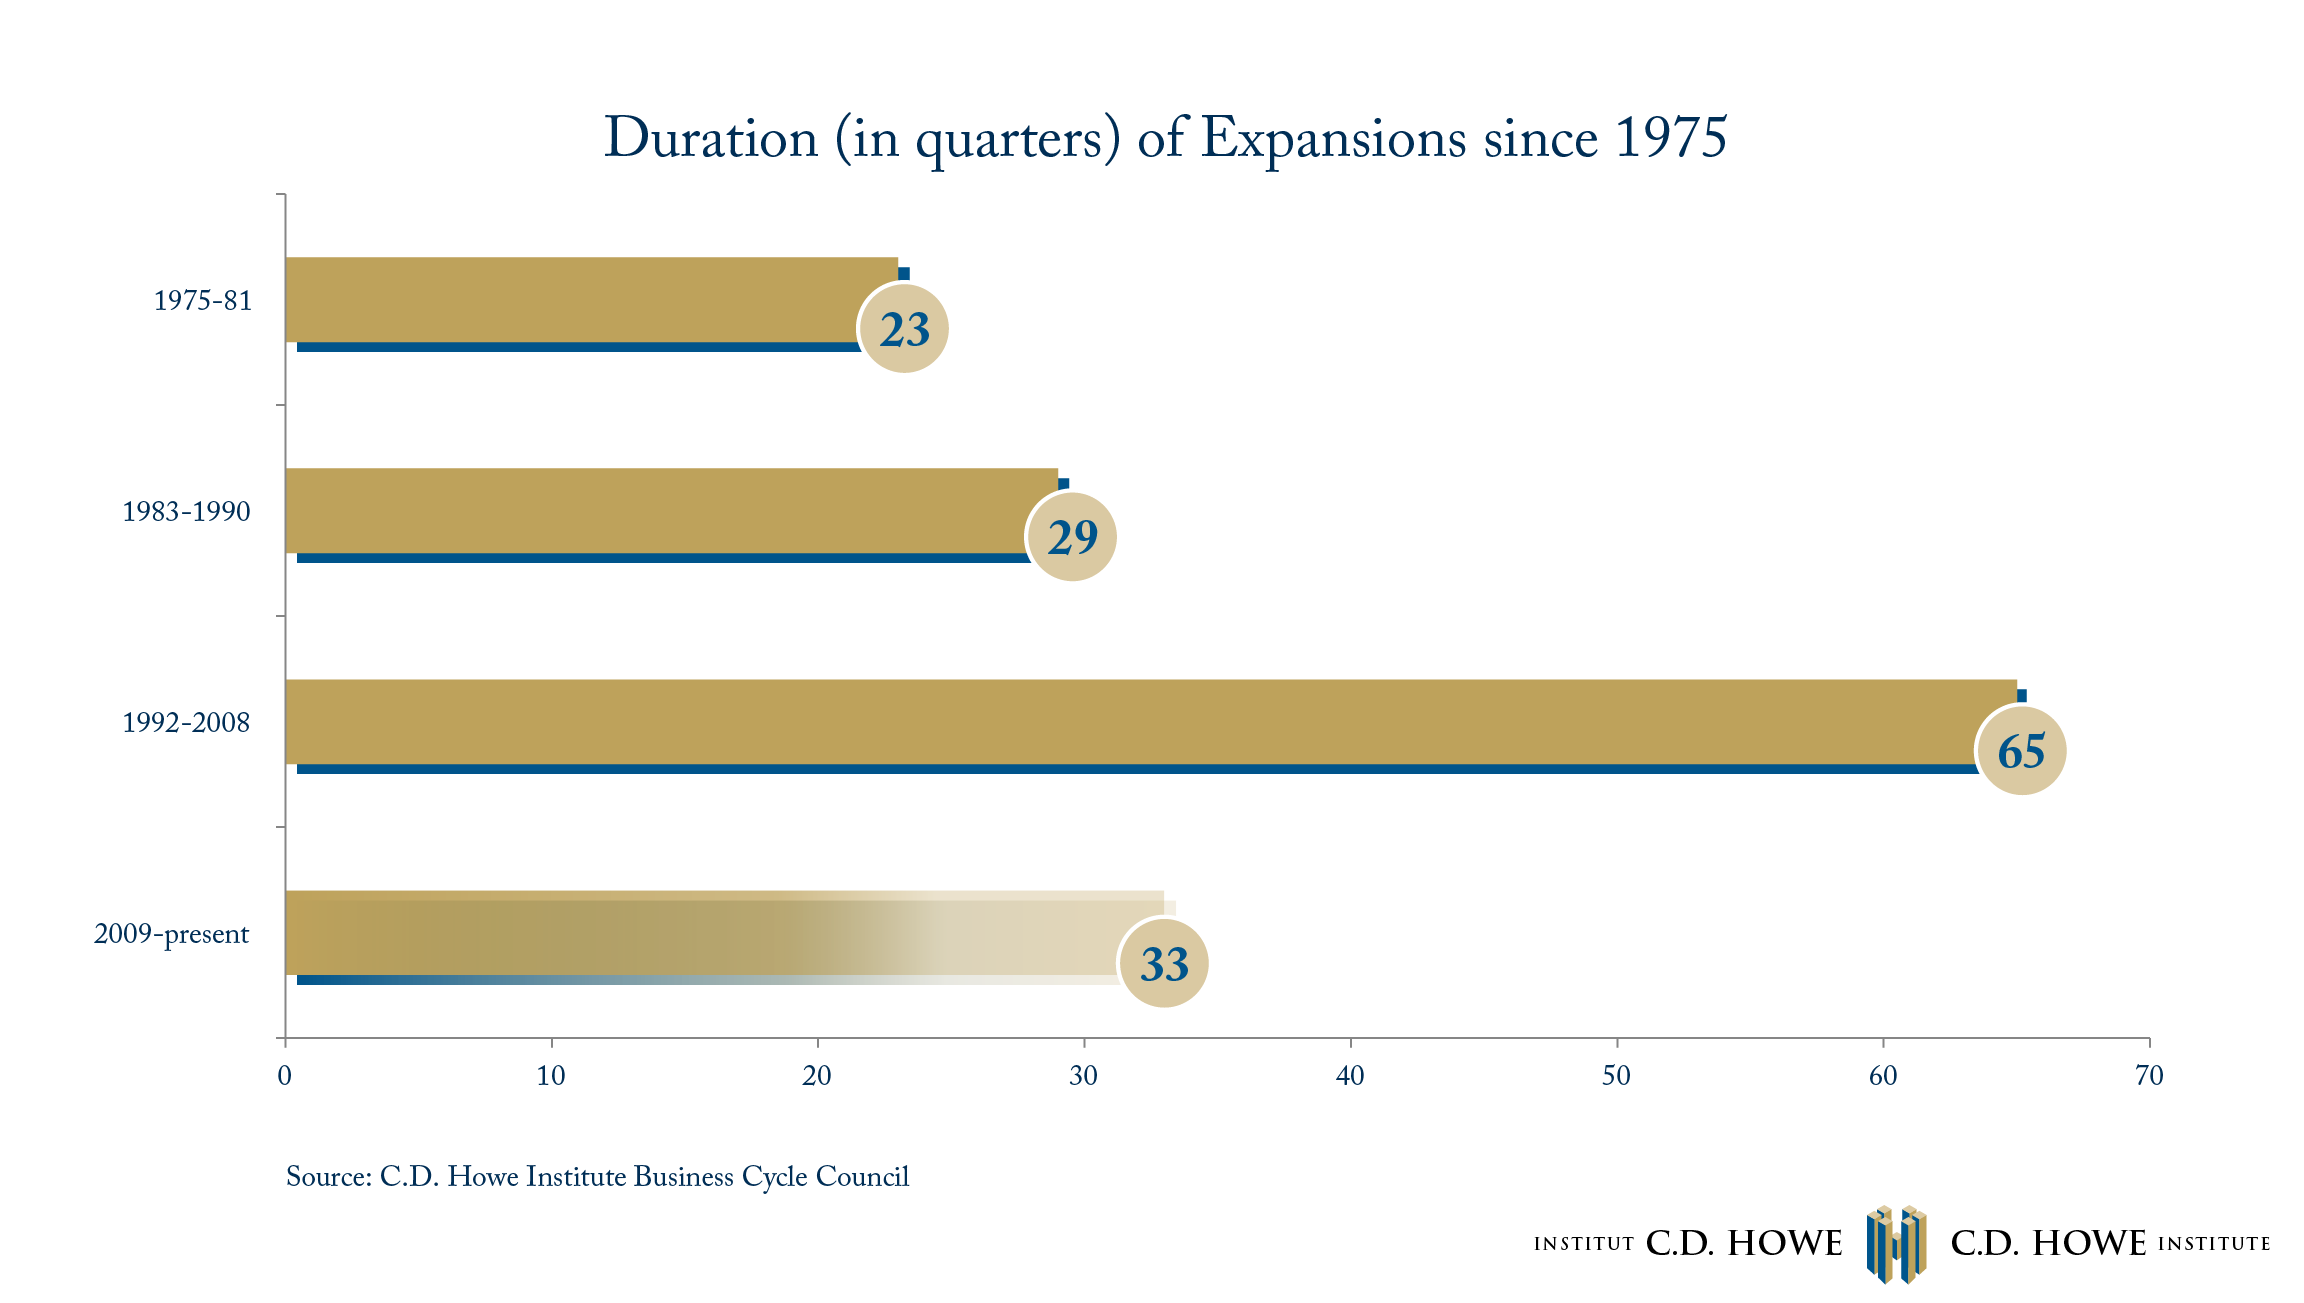 How Durable is the Current Economic Expansion?